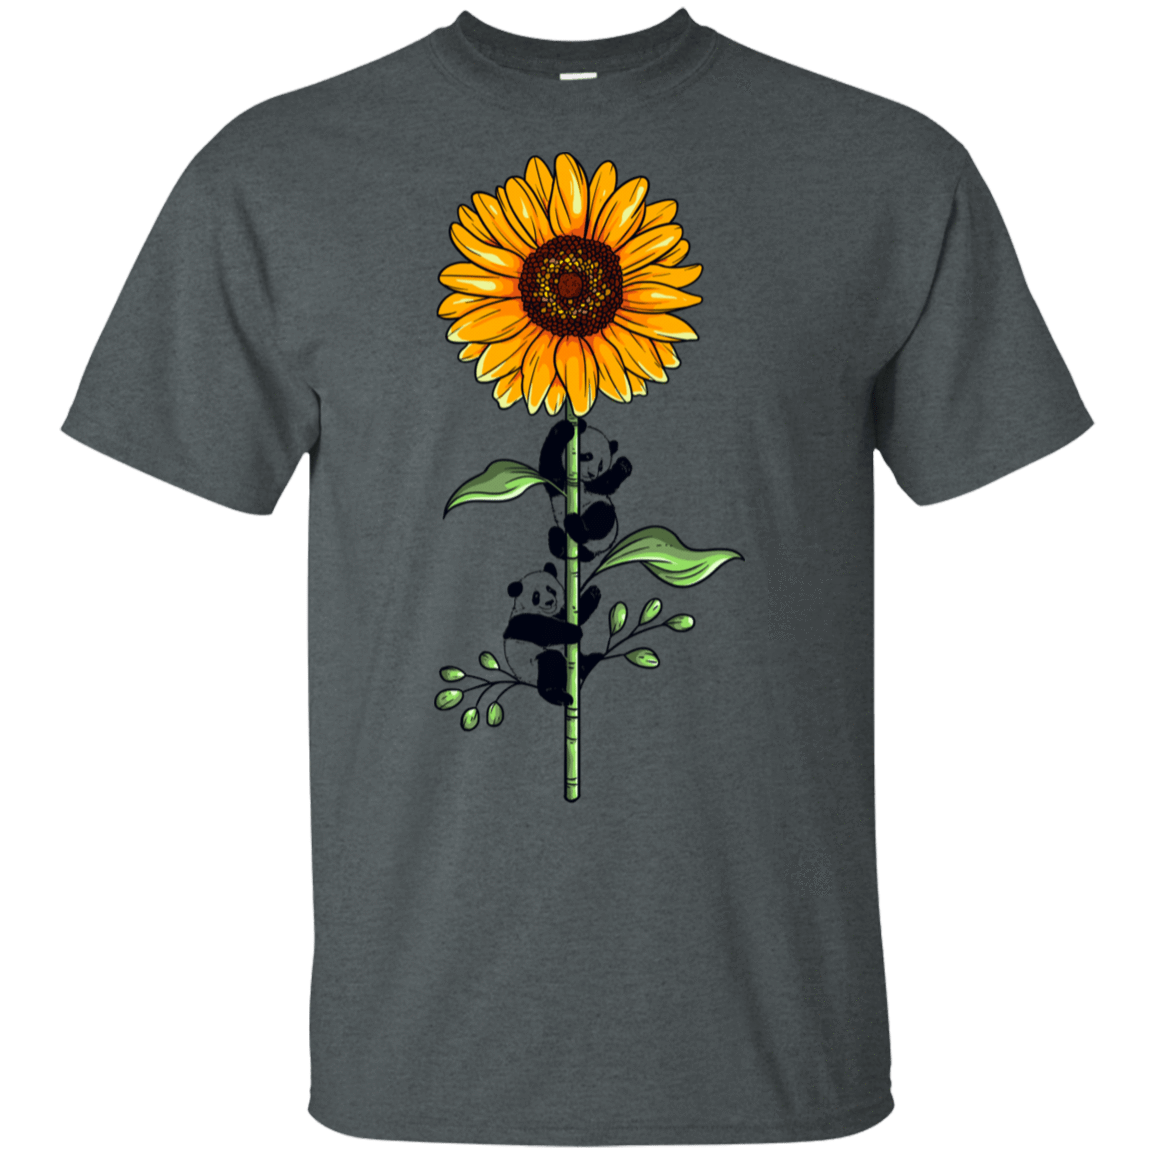 Sunflower Panda T-Shirt